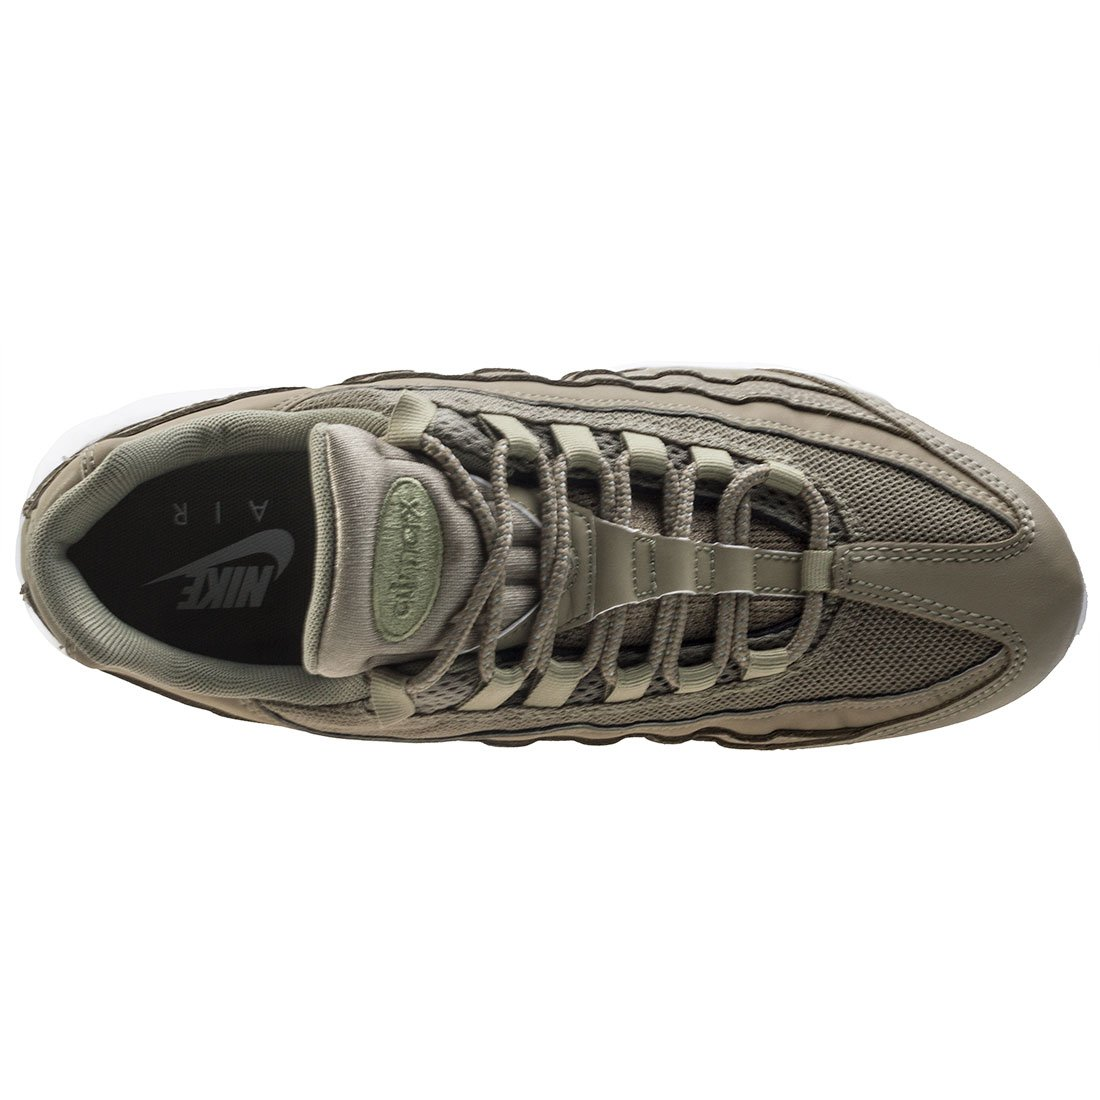 Nike 749766 201 Air Max 95 Essential Sneaker Oliv|45: Amazon